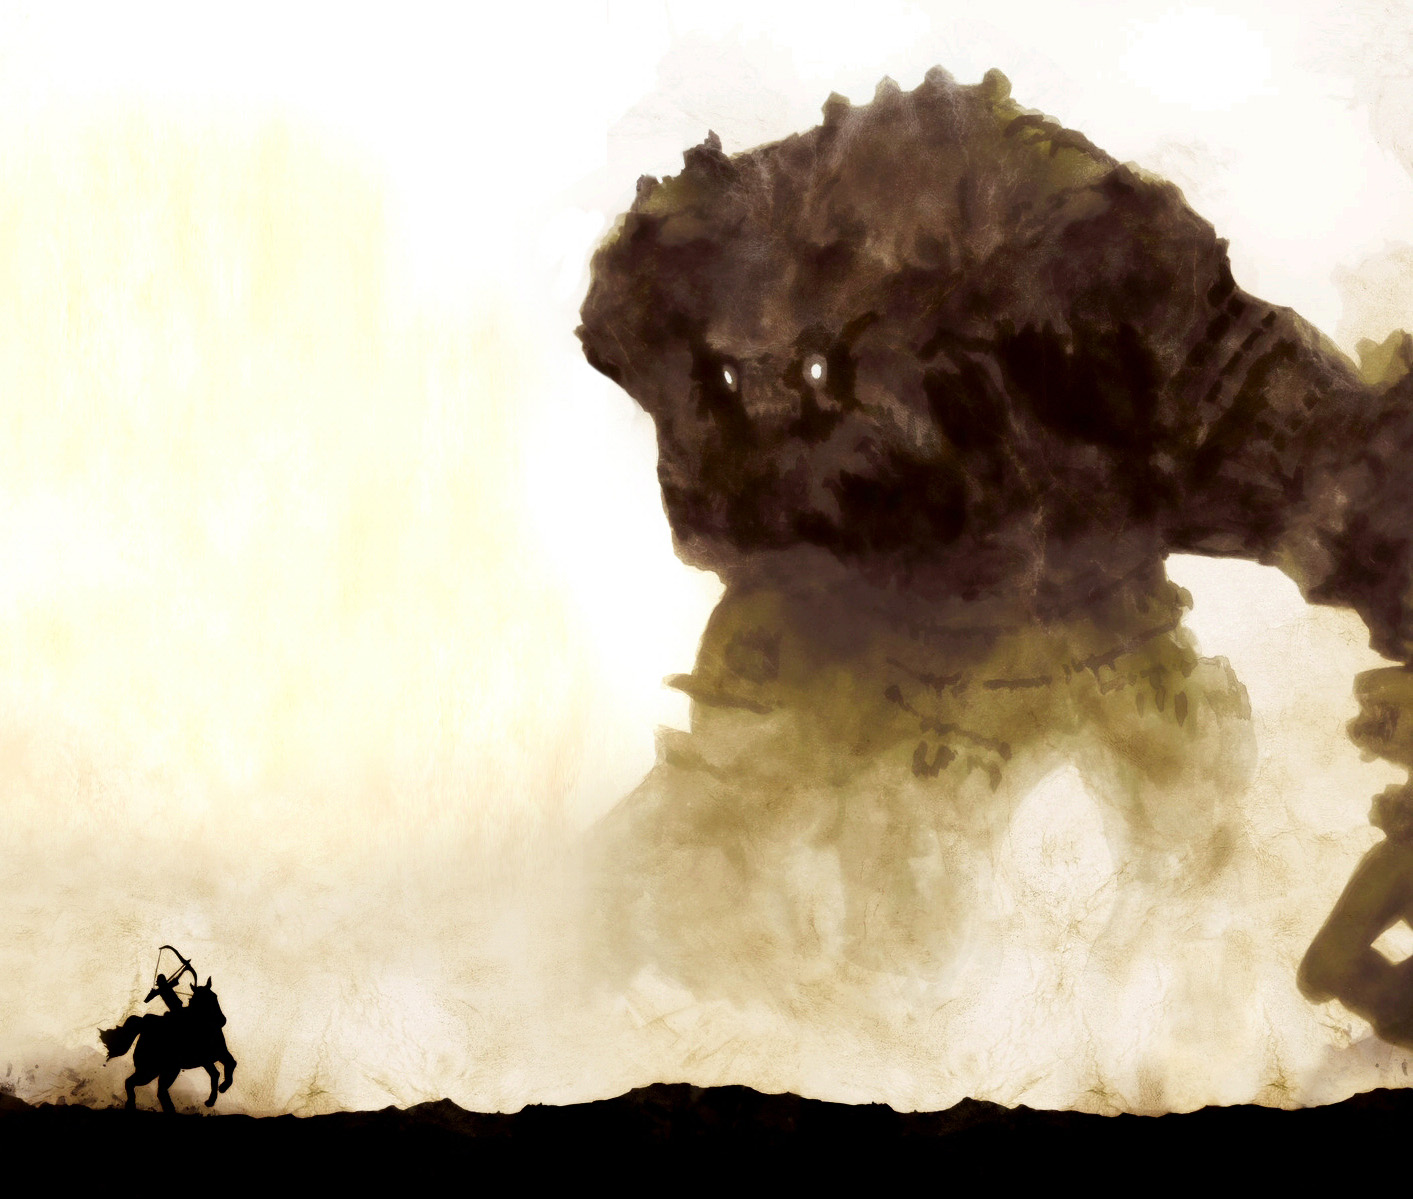 Episode 08 - Shadow of the Colossus